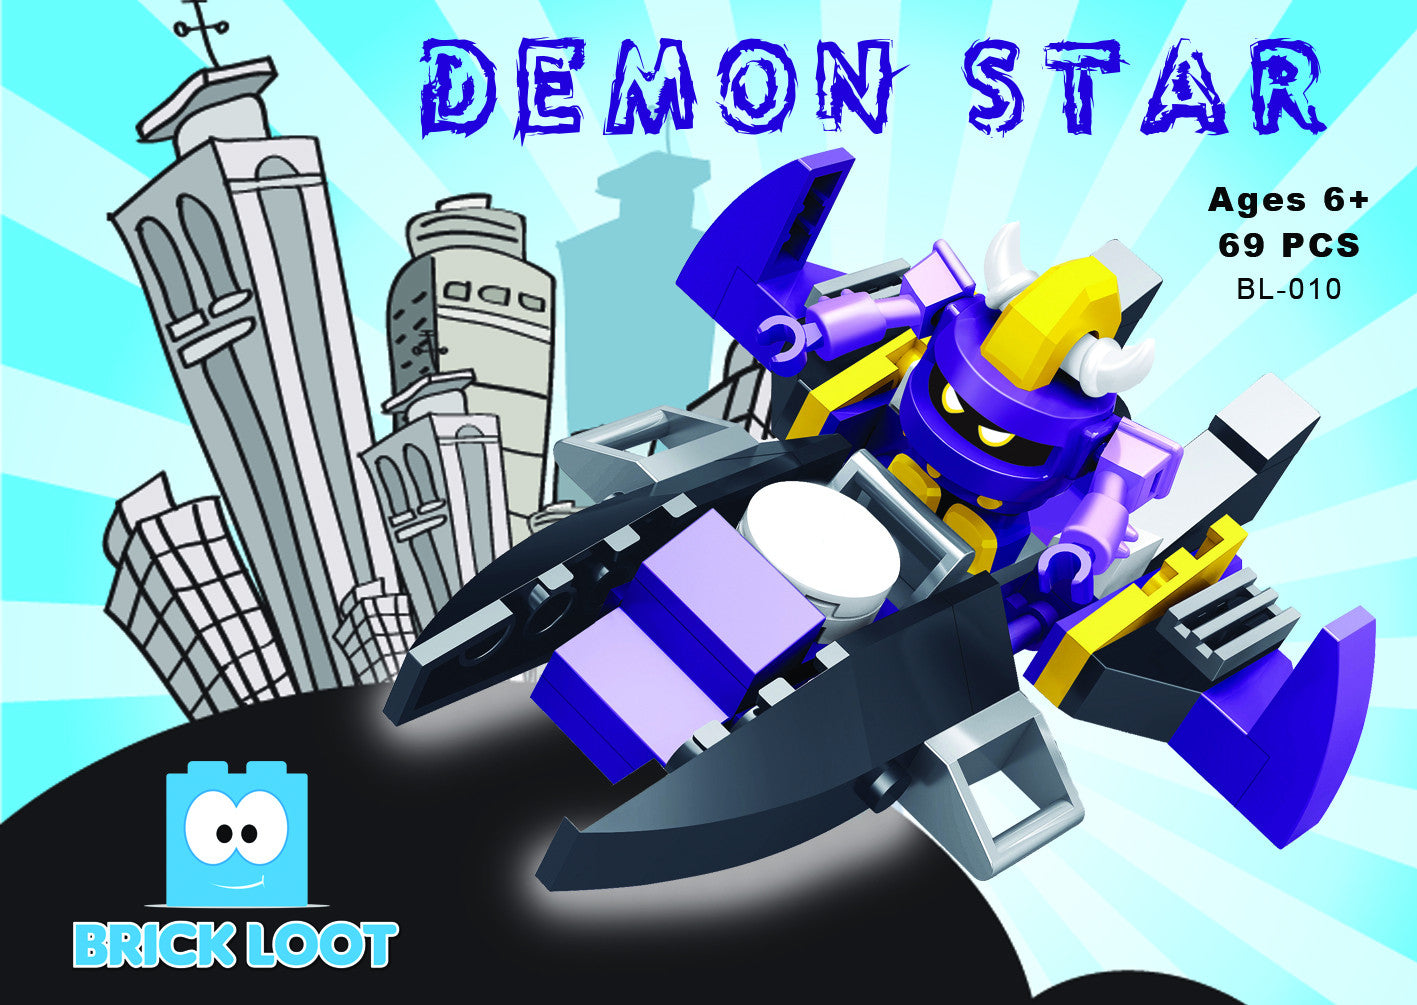 Demon Star